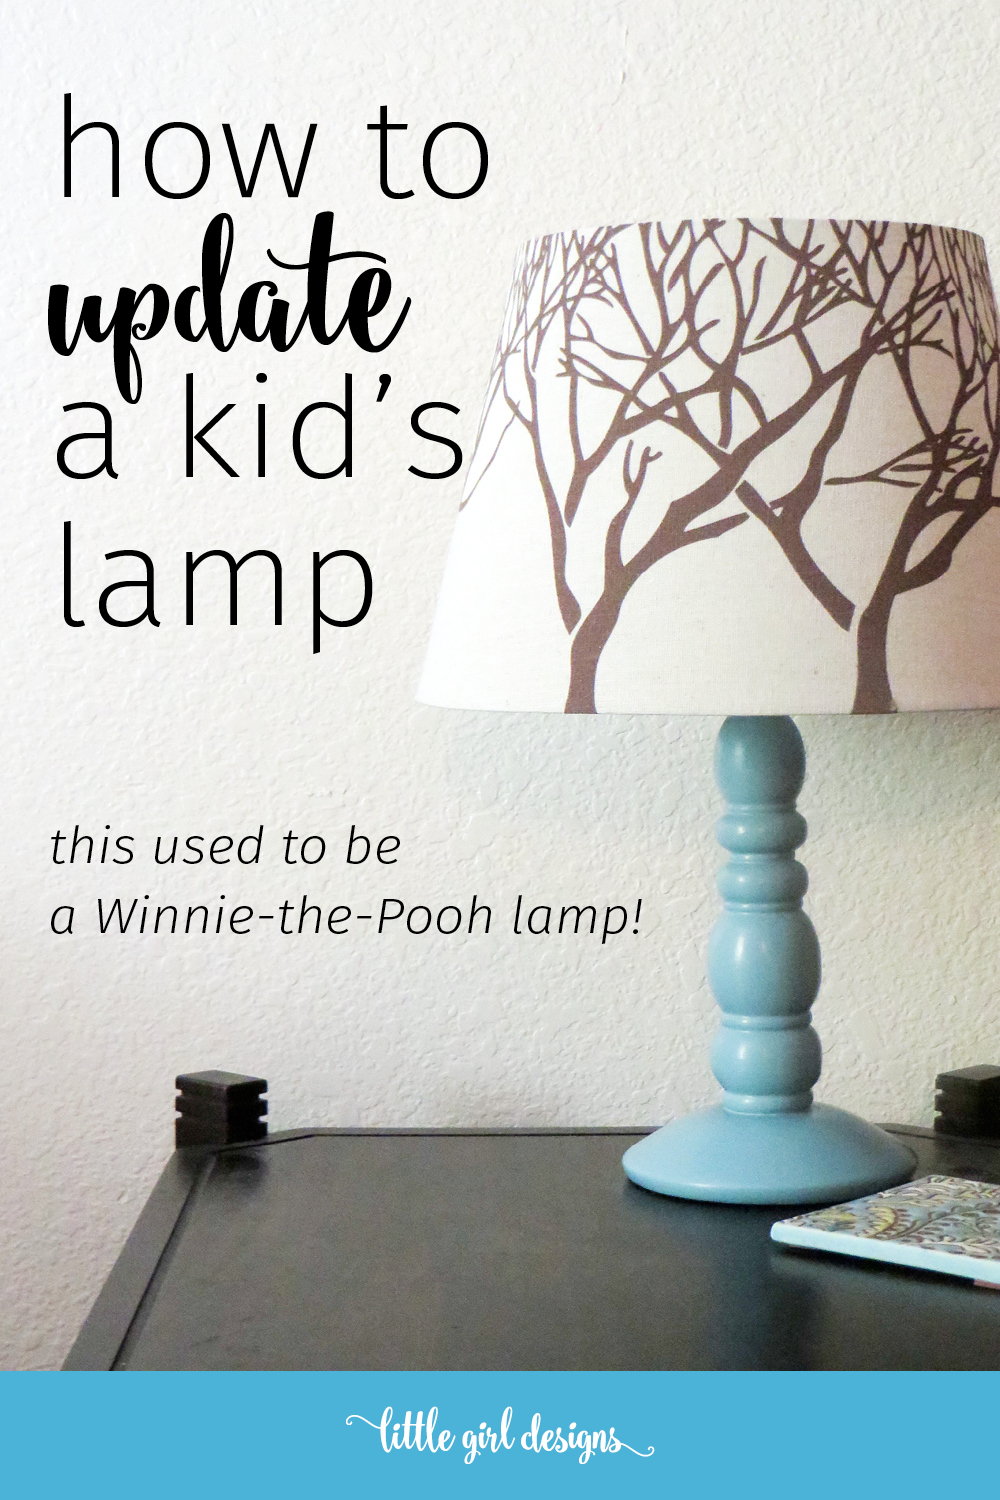 My daughter's Winnie-the-Pooh lamp is so cute but yeah, I don't really want it on my night stand. So I updated it one afternoon. If I had known it was this easy, I would have done this a long time ago!